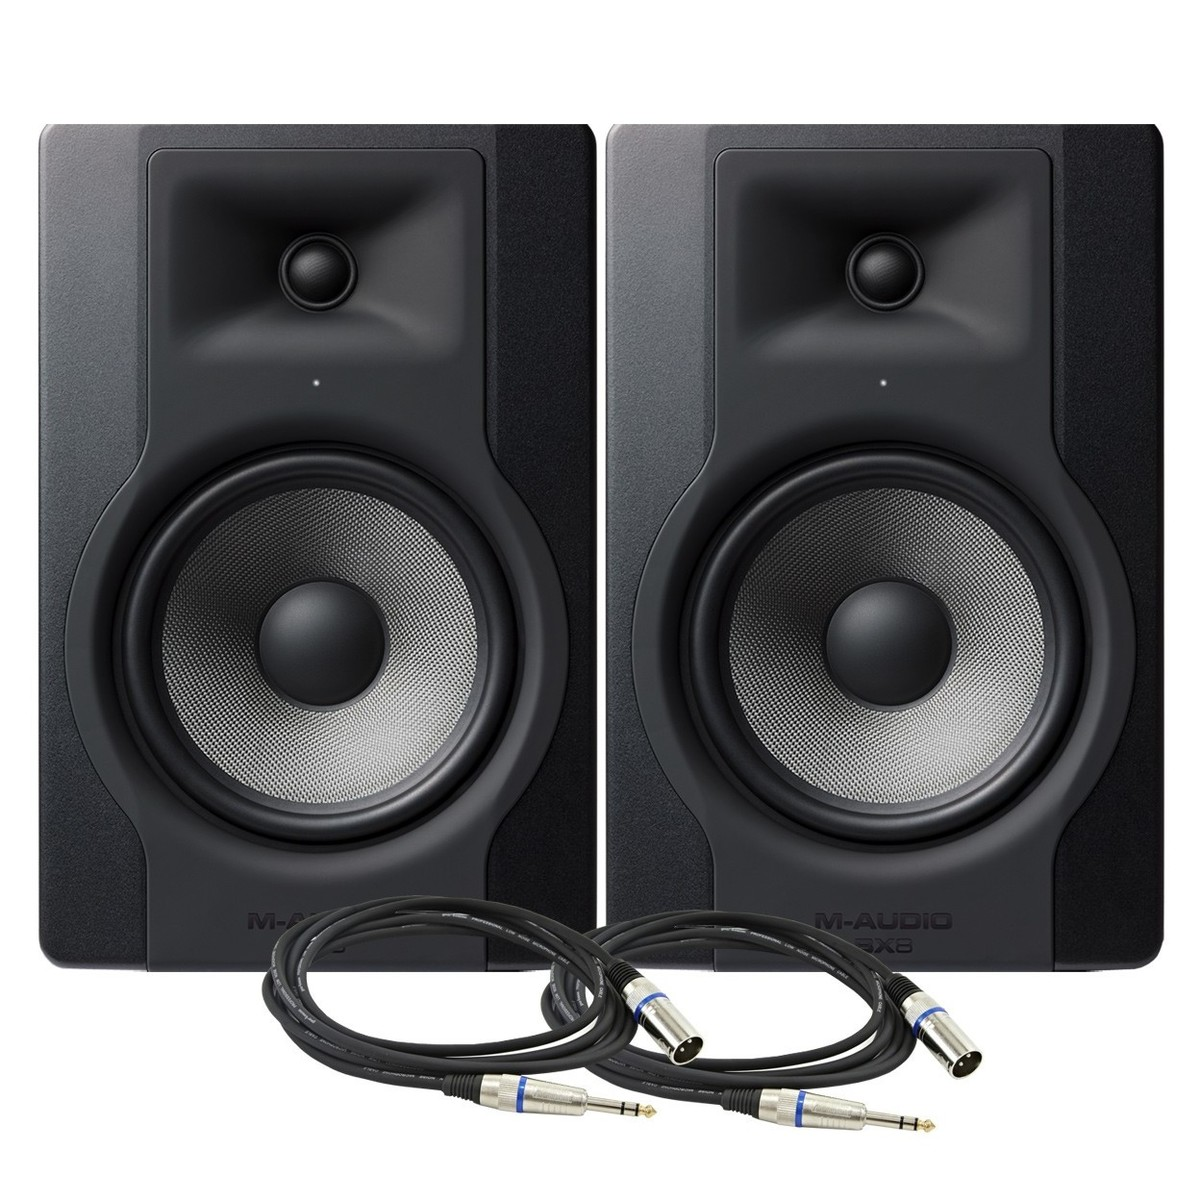 Cheap M-Audio BX8-D3 Studio Monitor Pair with Cables